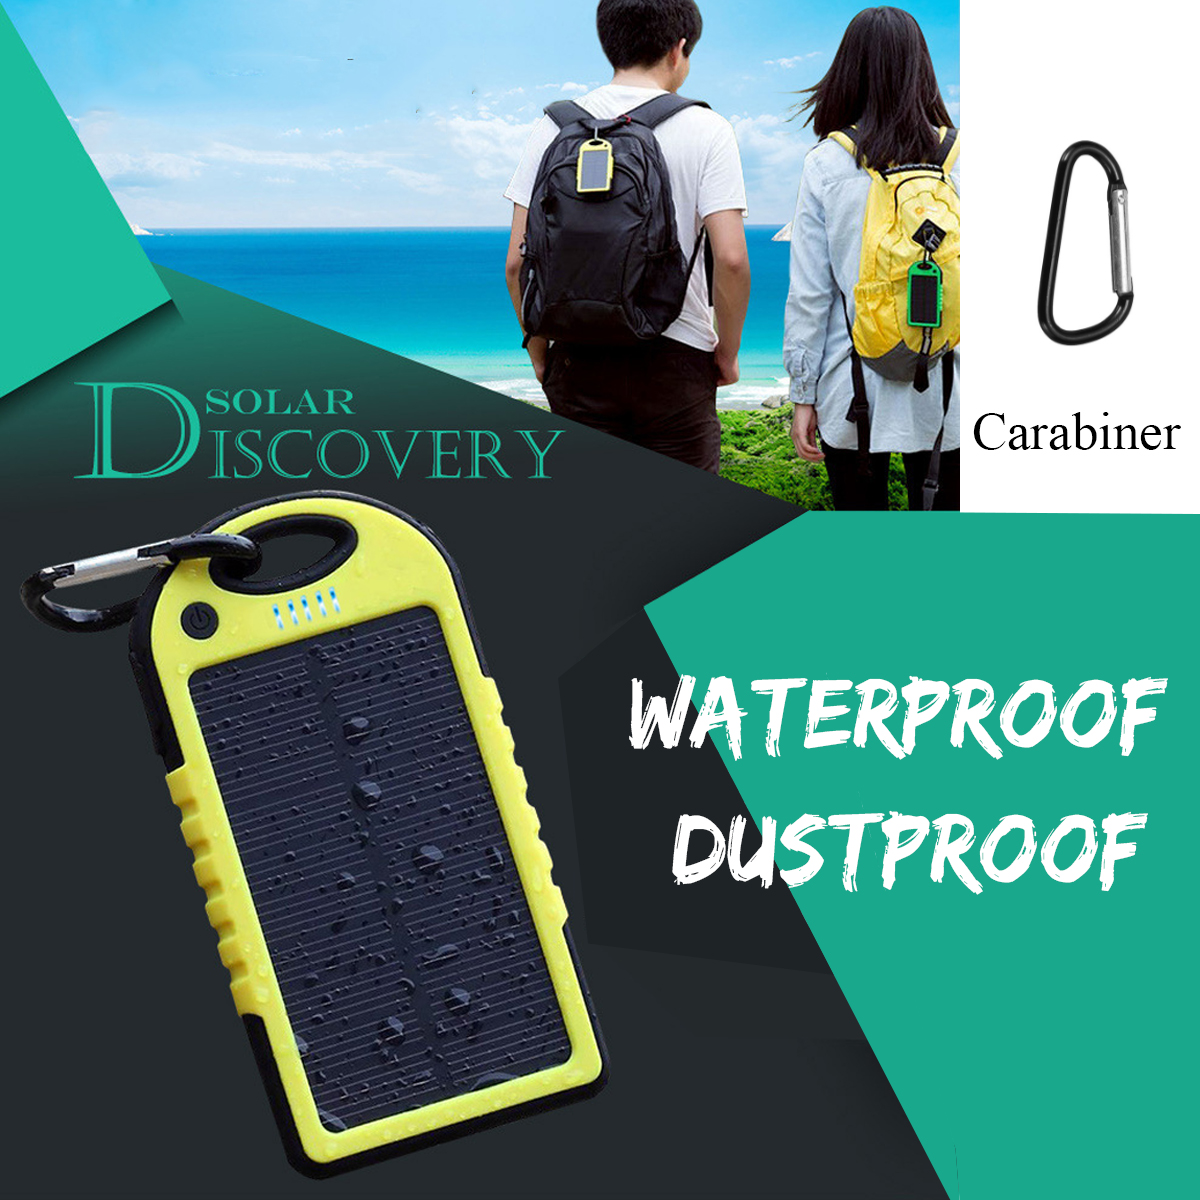 Portable 12000mAh Solar Power Bank for Charging iPhone/iPads/Android Phones/Cameras 1